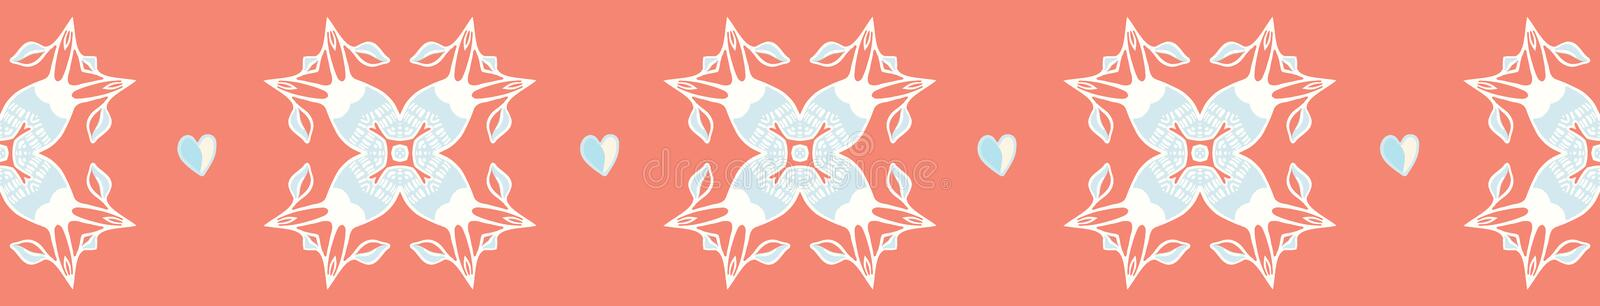 Coral geometric damask hand drawn seamless vector border. All over print with peach blue style hearts. Illustration for textiles, St Valentines Day, weddings royalty free illustration